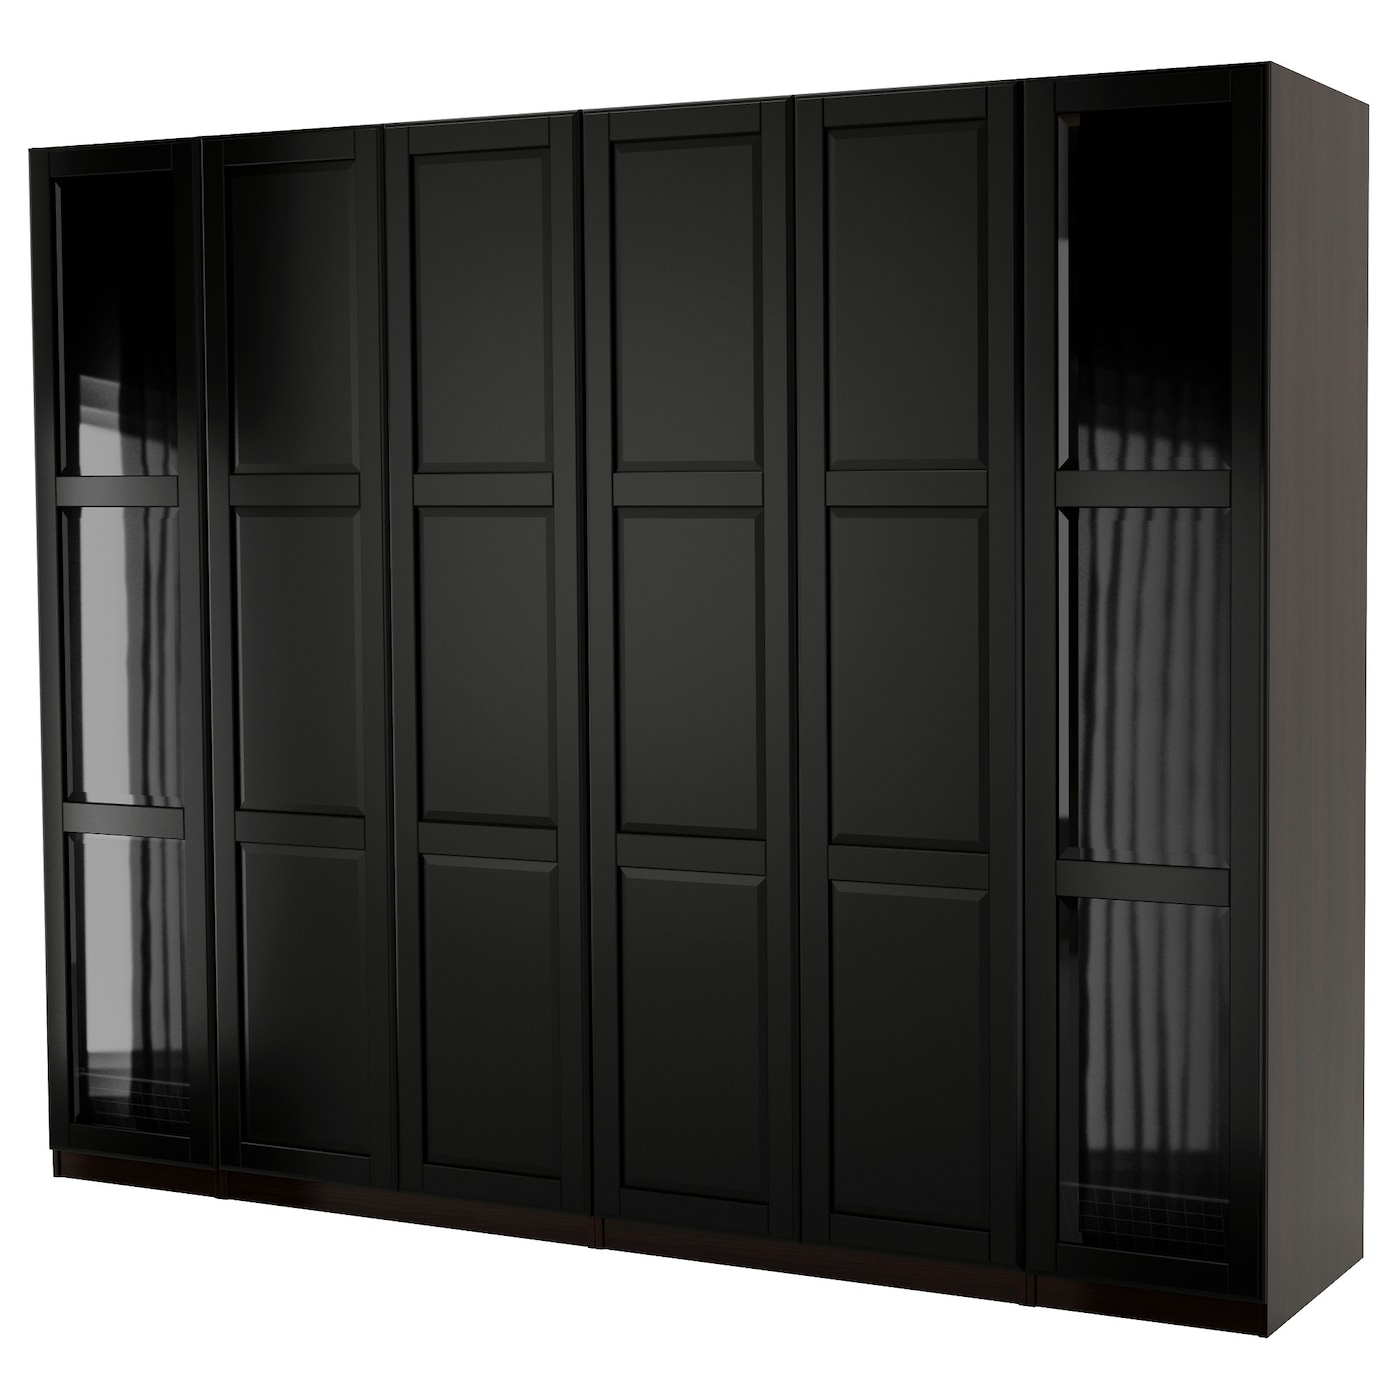 pax armoire penderie brun noir undredal undredal verre 300x60x236 cm ikea. Black Bedroom Furniture Sets. Home Design Ideas